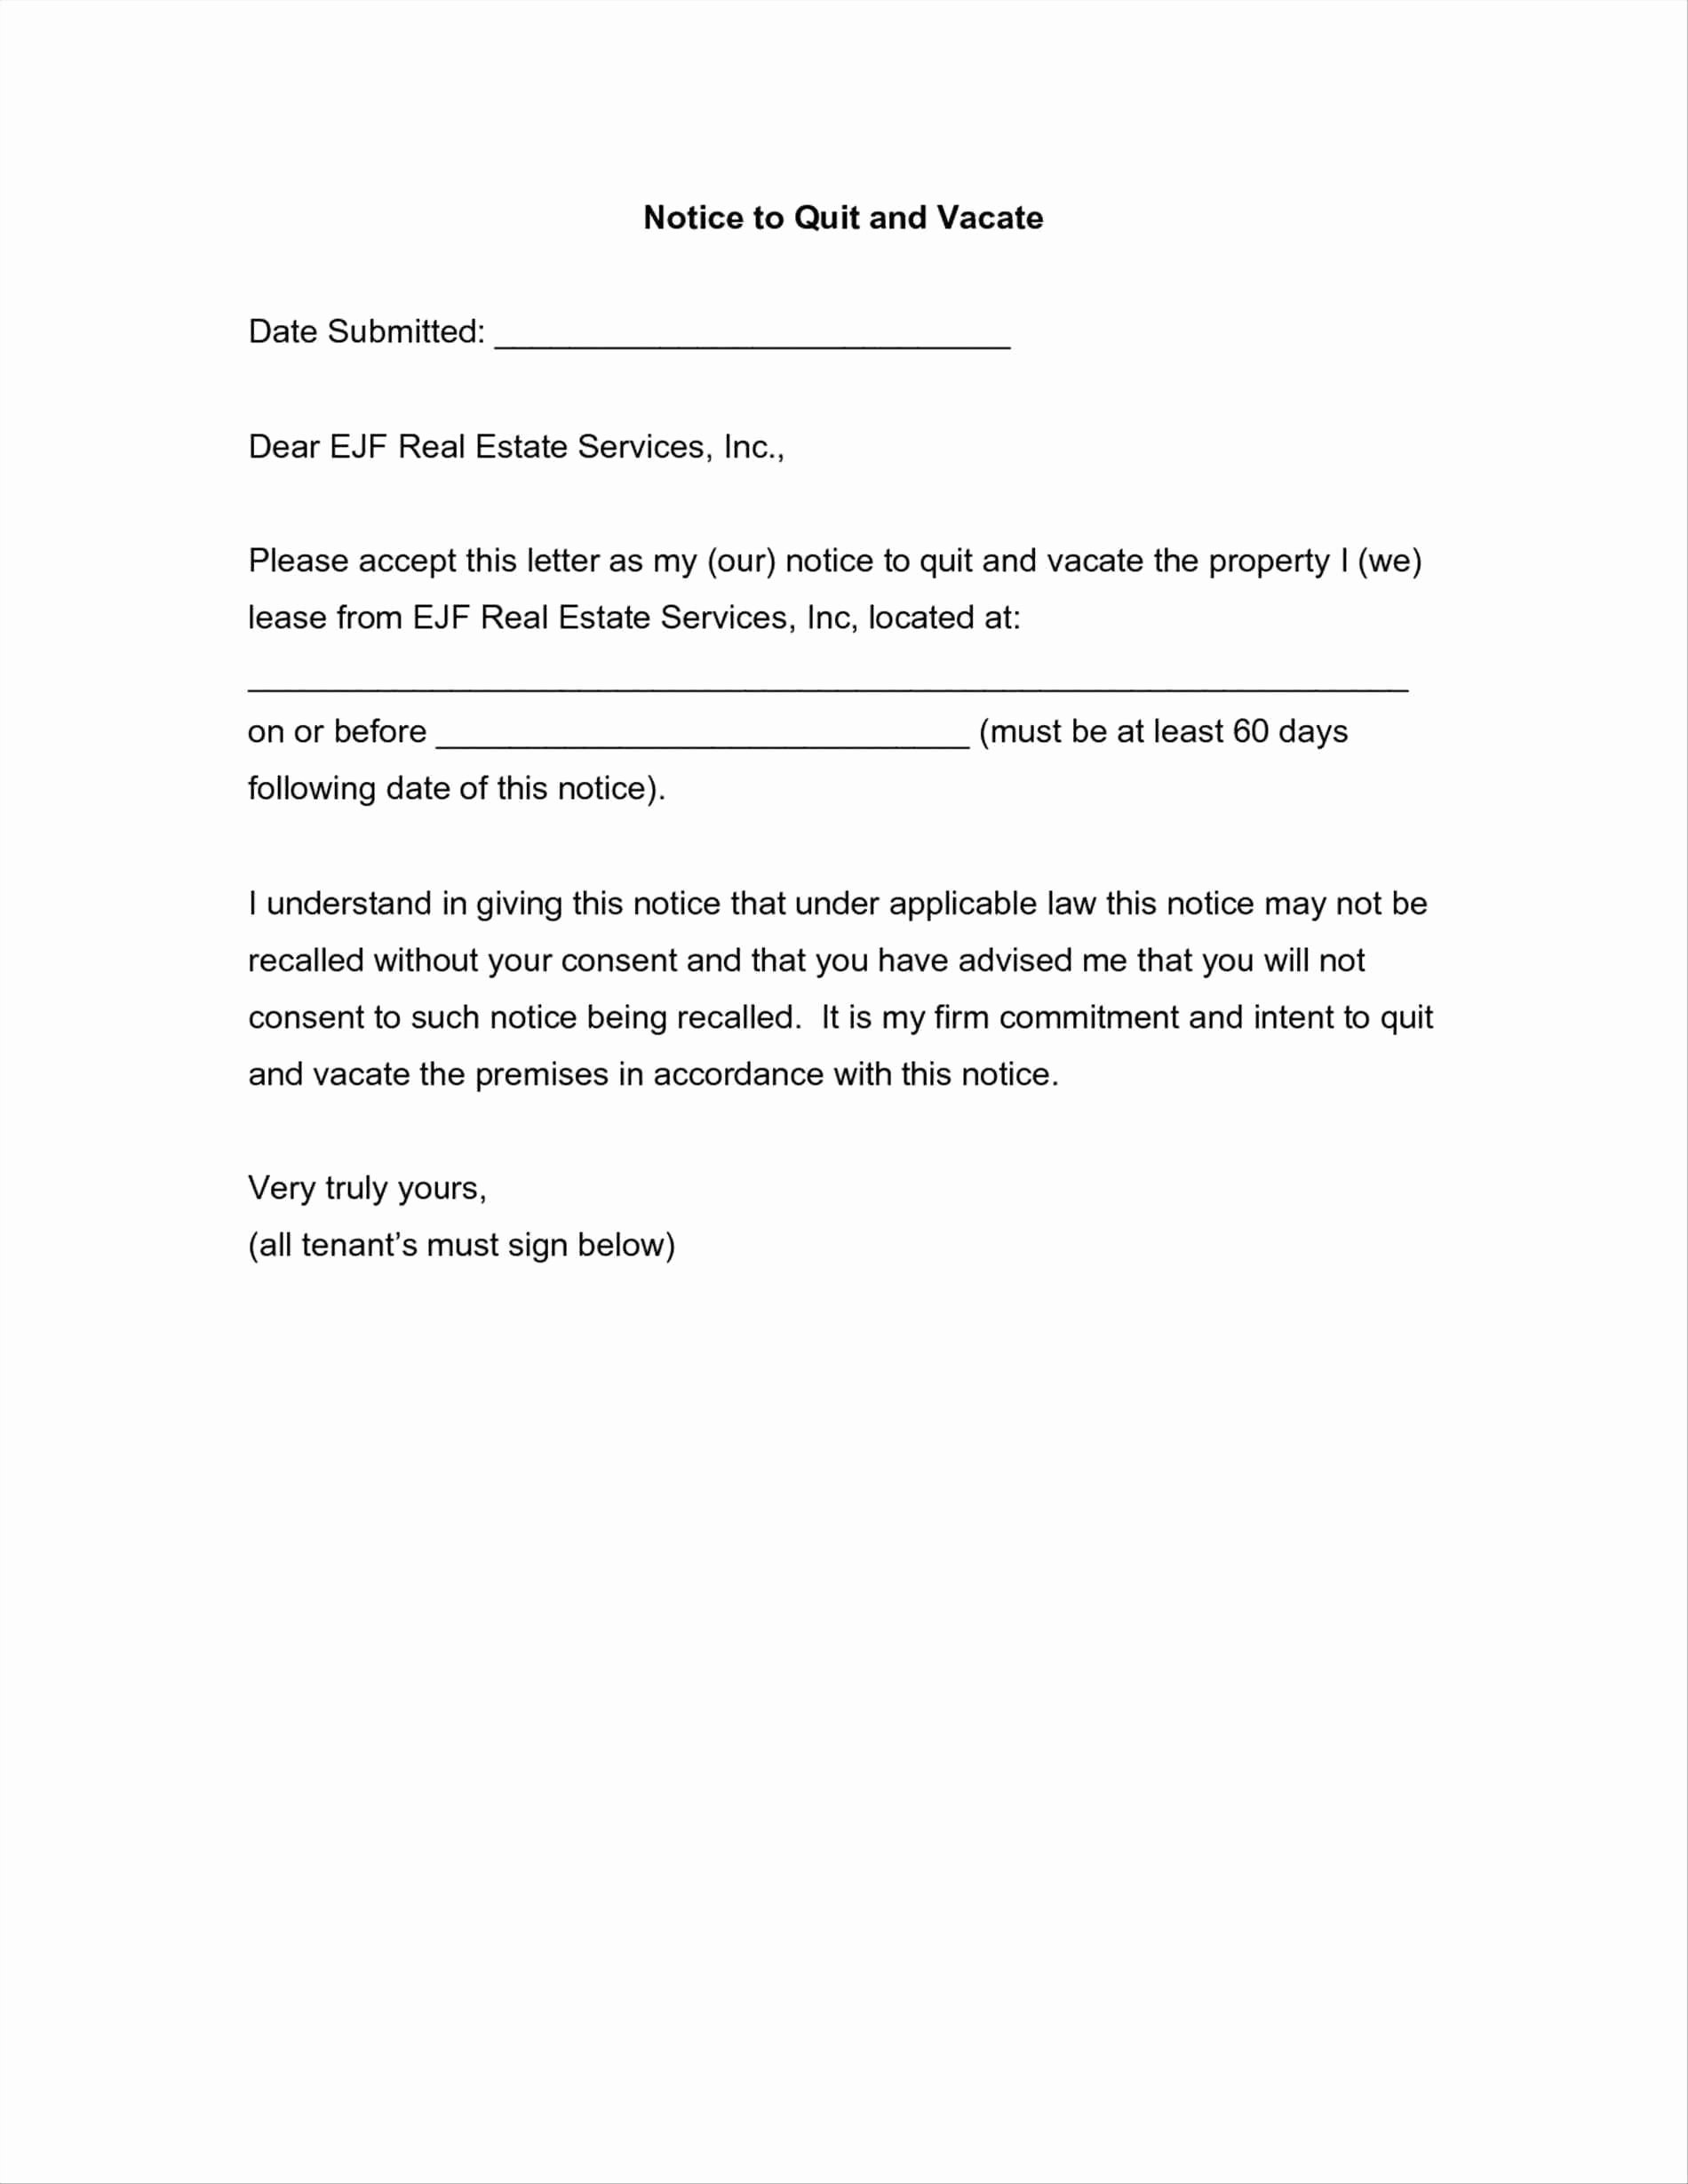 Written Notice to Vacate Templates Elegant Notice to Vacate Apartment Letter Template Samples